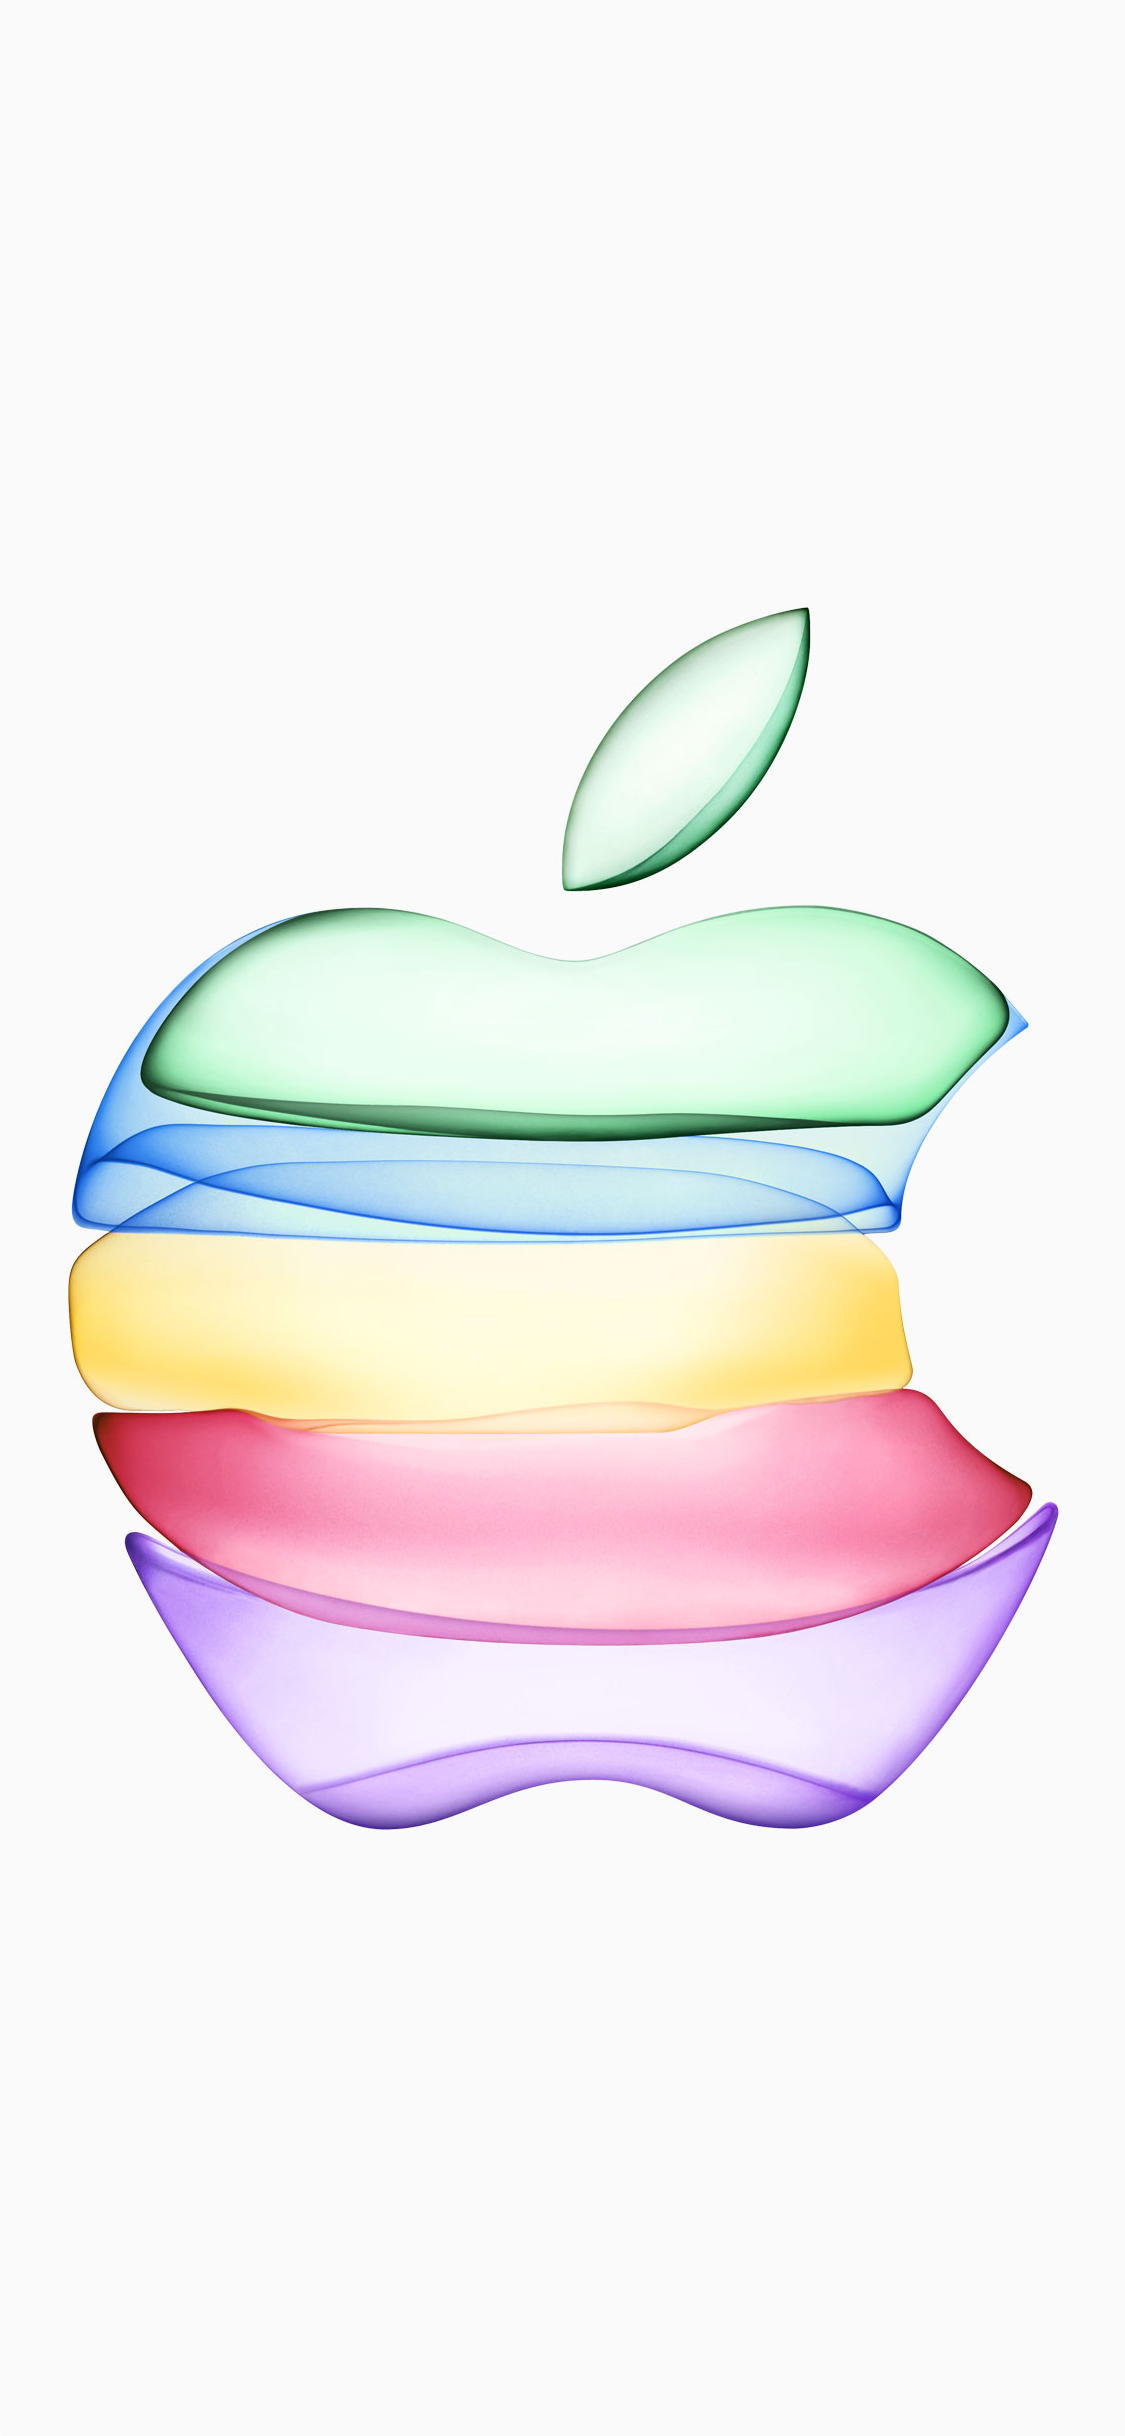 Apple's September Special Event Wallpapers for iPhone and